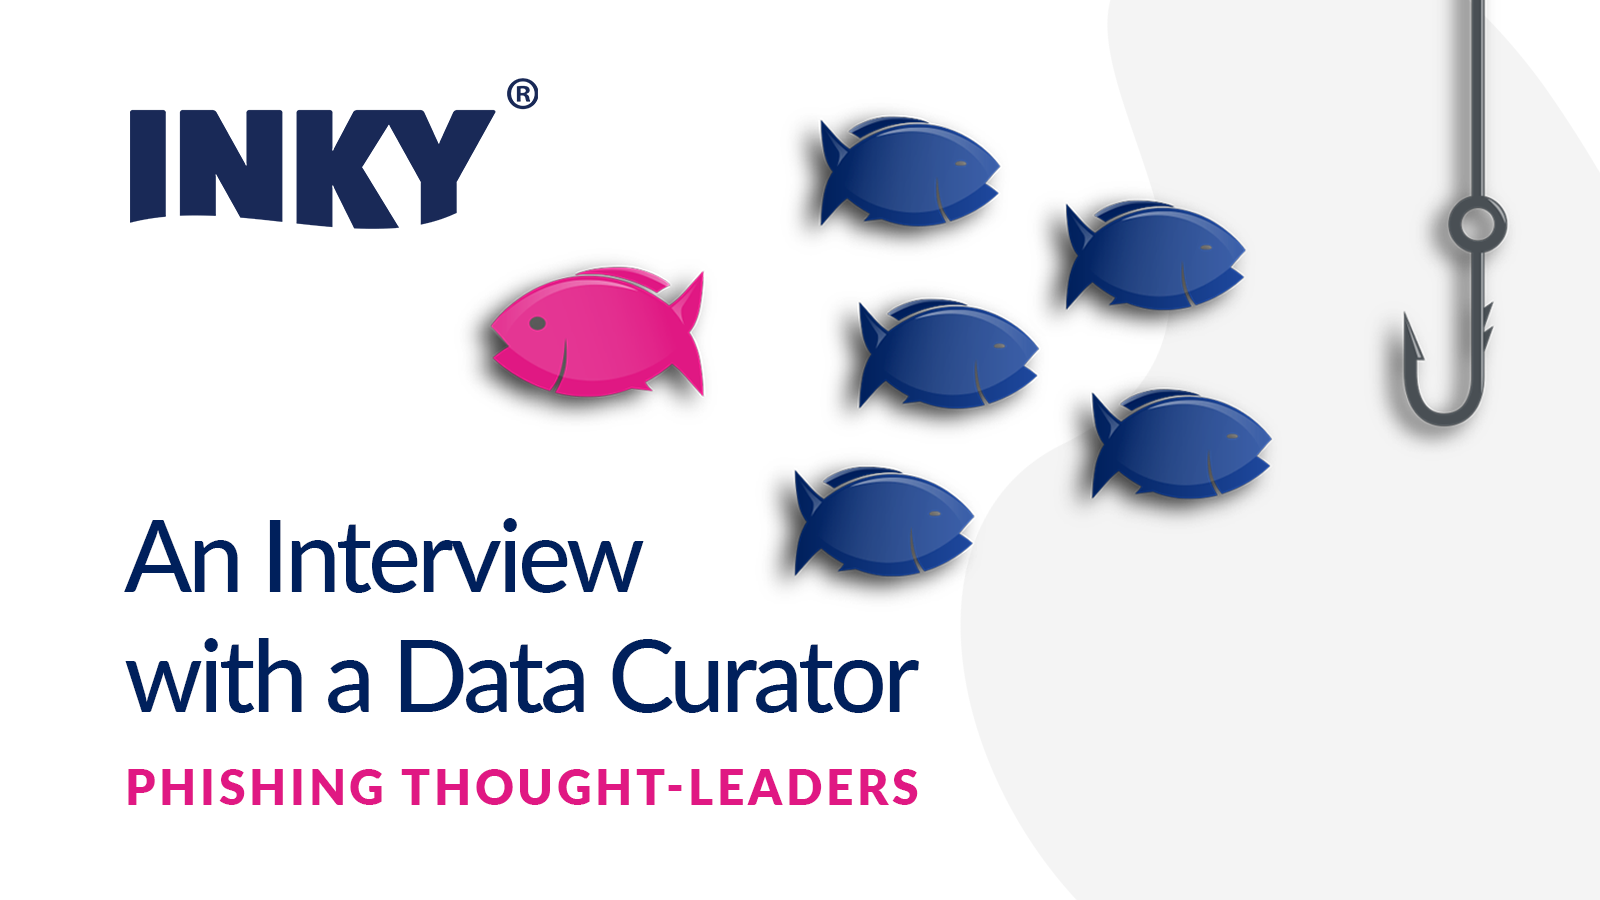 Phishing Thought Leaders - Data Curator